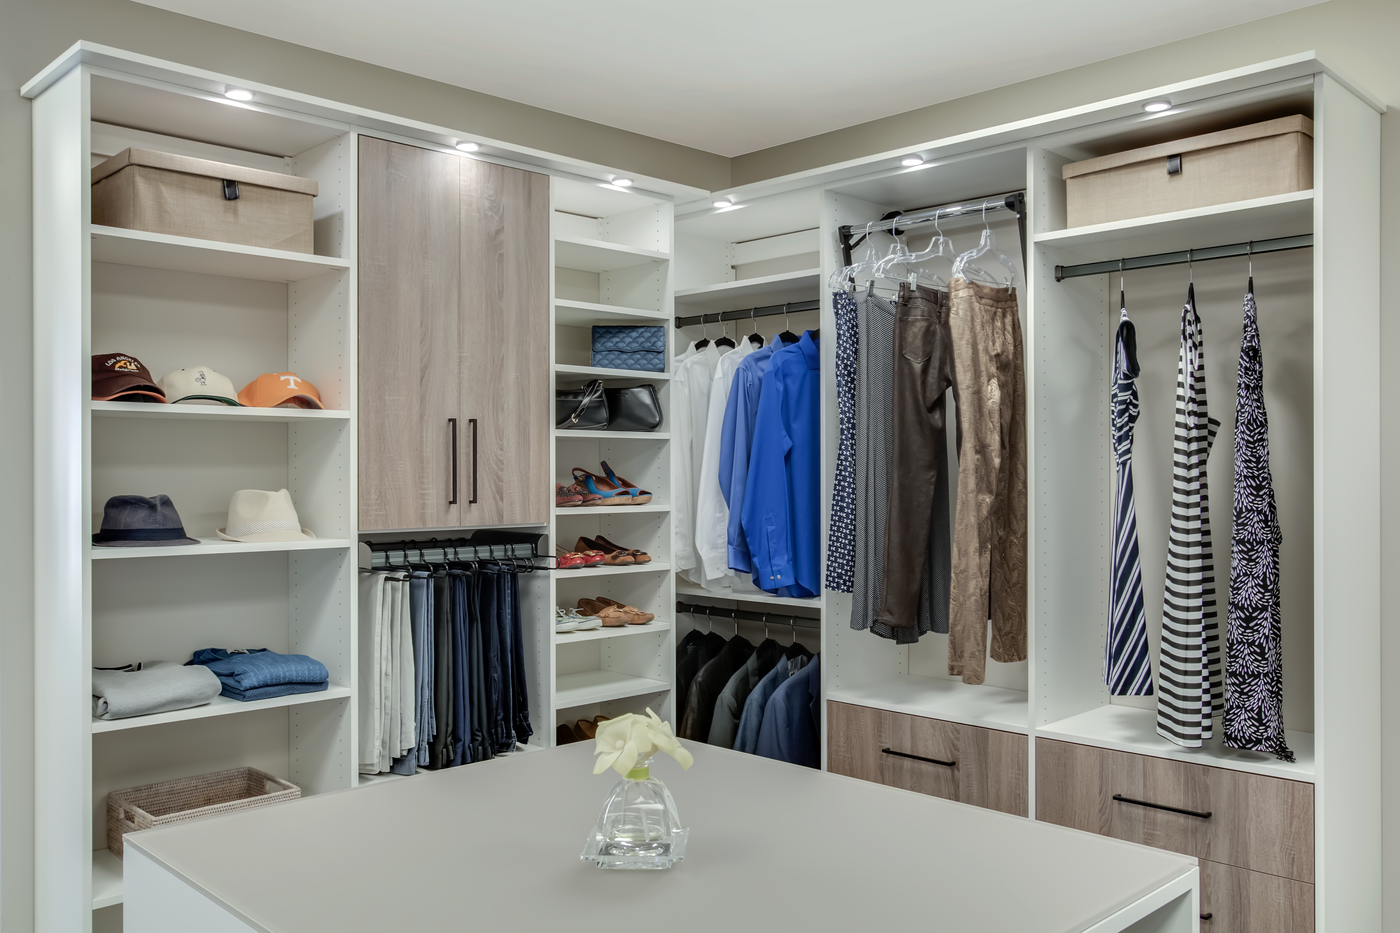 Modern Closet with LED lights, motorized wardrobe lift, pant rack, and island with back painted glass from Closets by McKenry